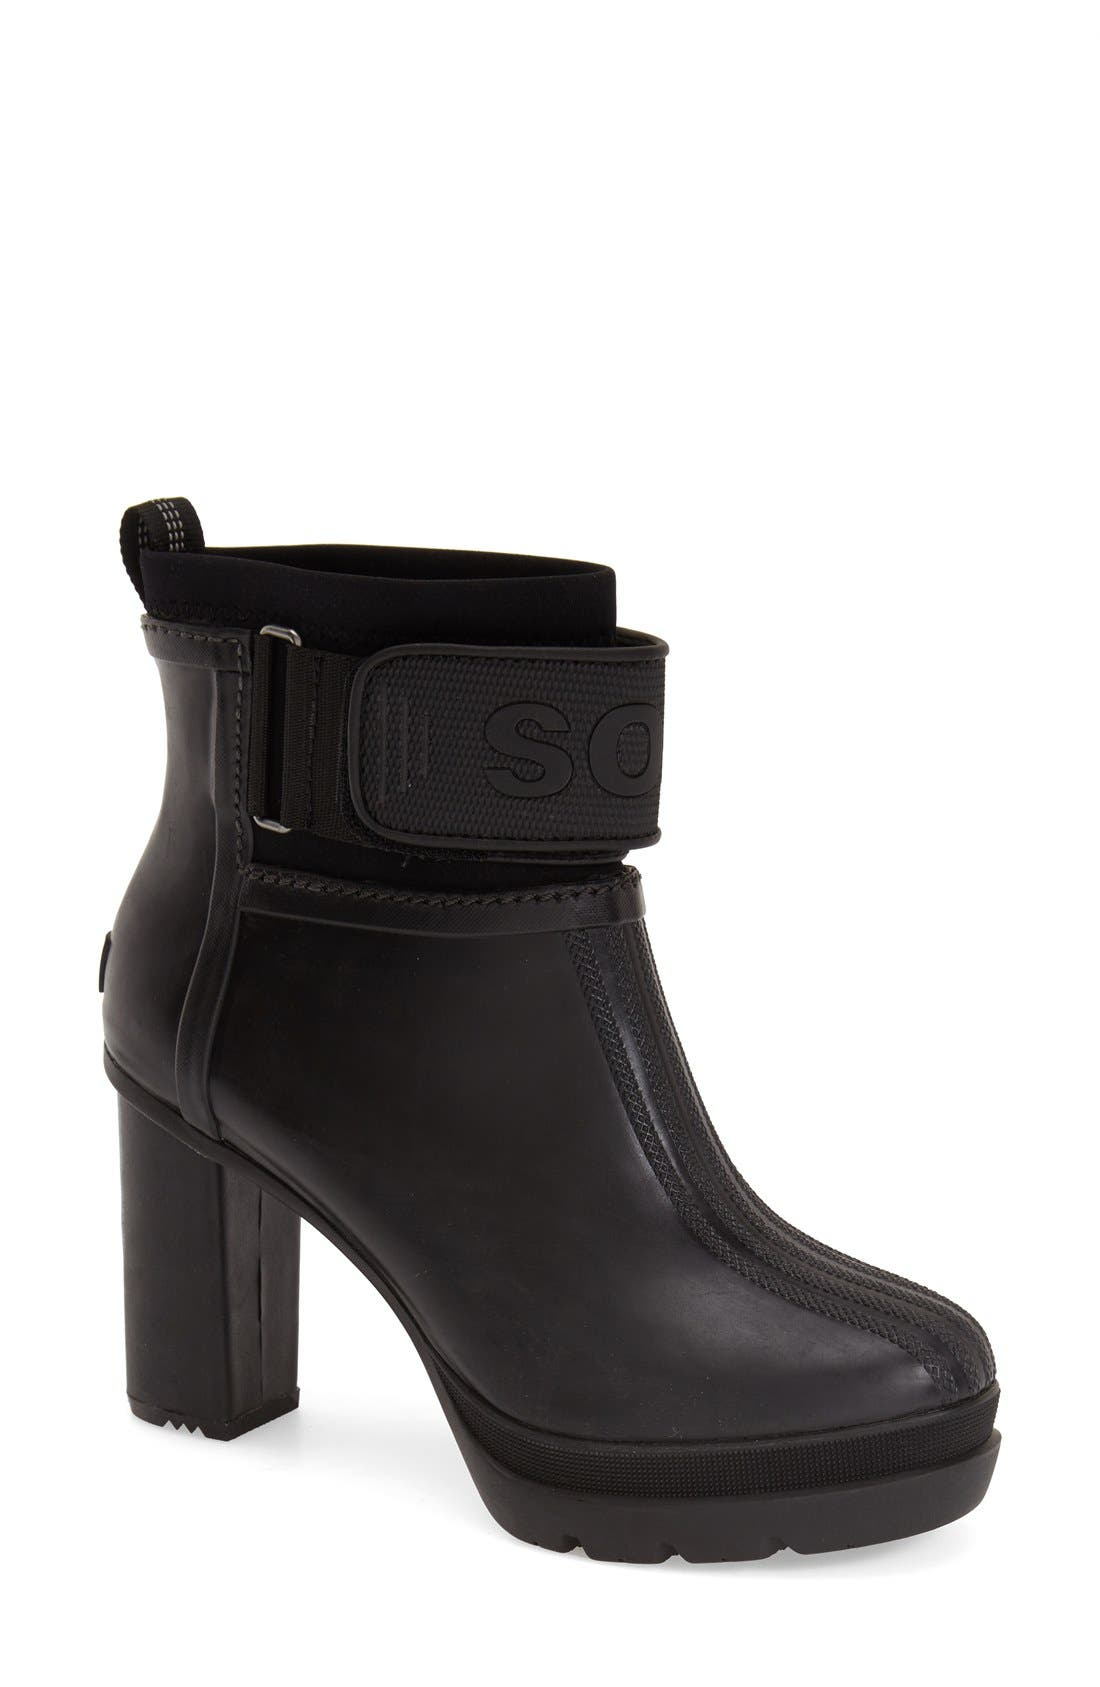 'Medina III' Waterproof Bootie,                             Main thumbnail 1, color,                             010